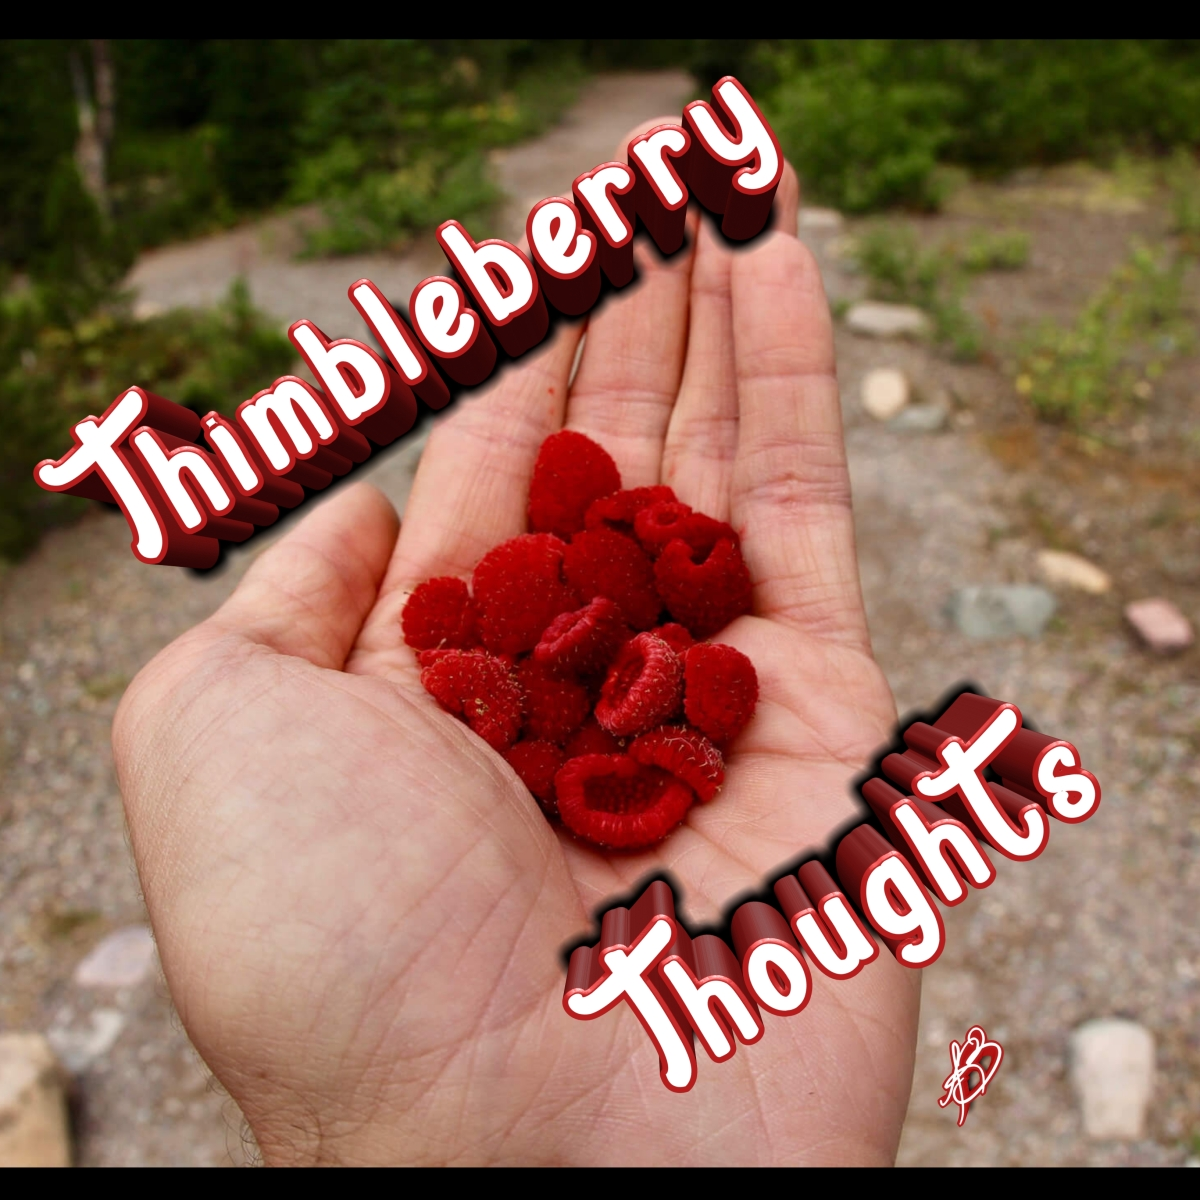 Thimbleberry Thoughts